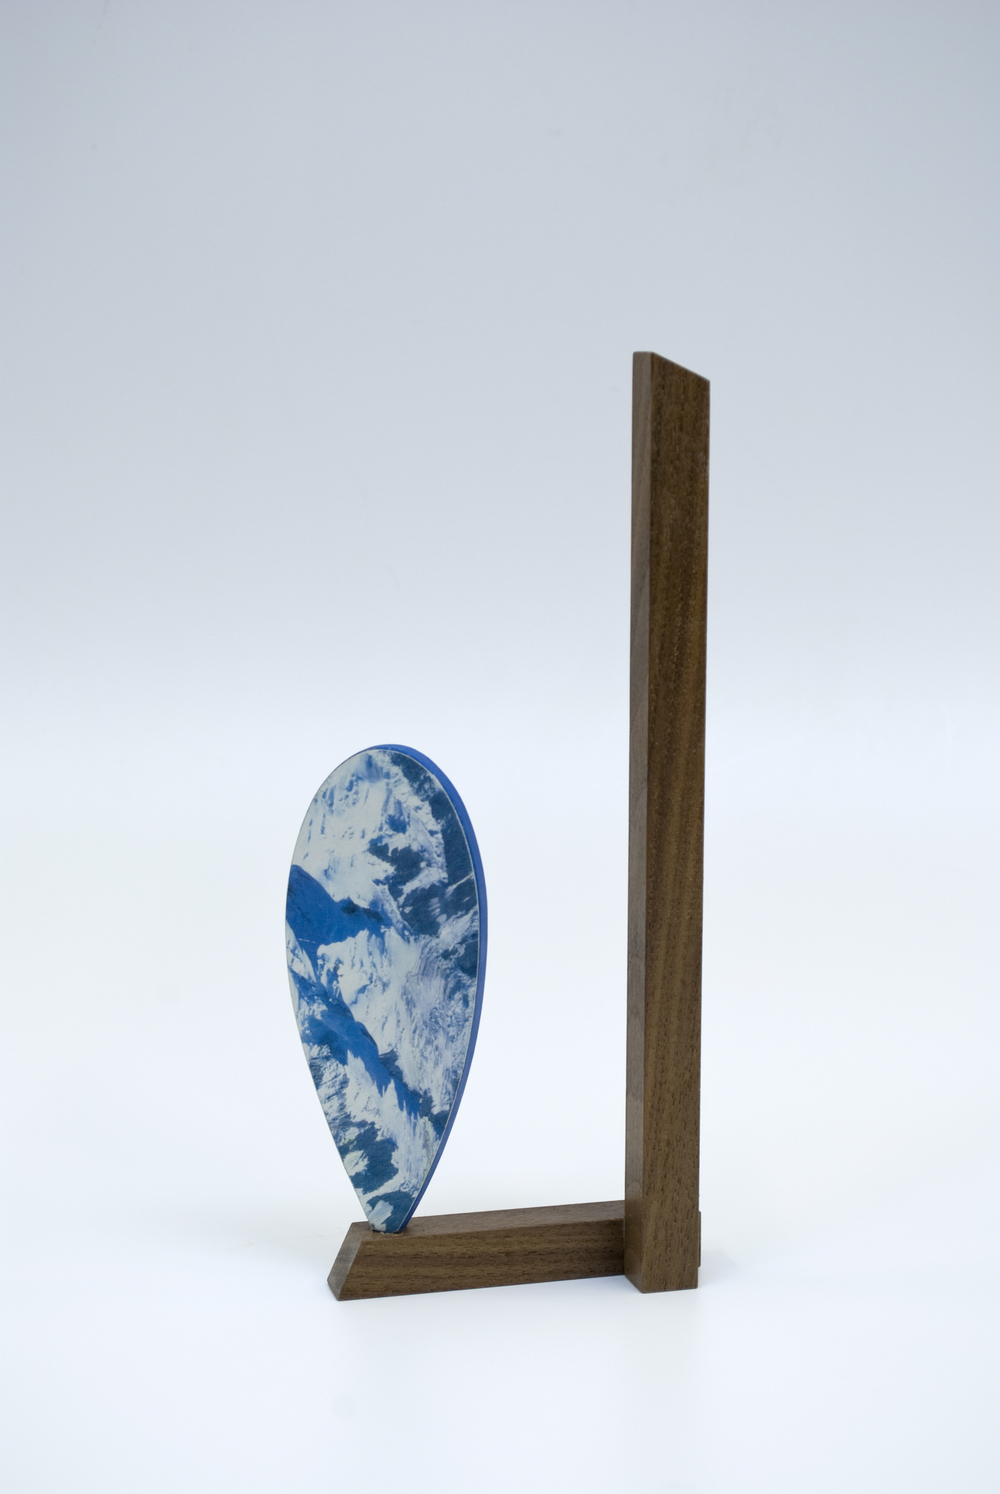 Maquette 9 (back),  2015  8 x 3 x 1 inches  Wood, paint, found image